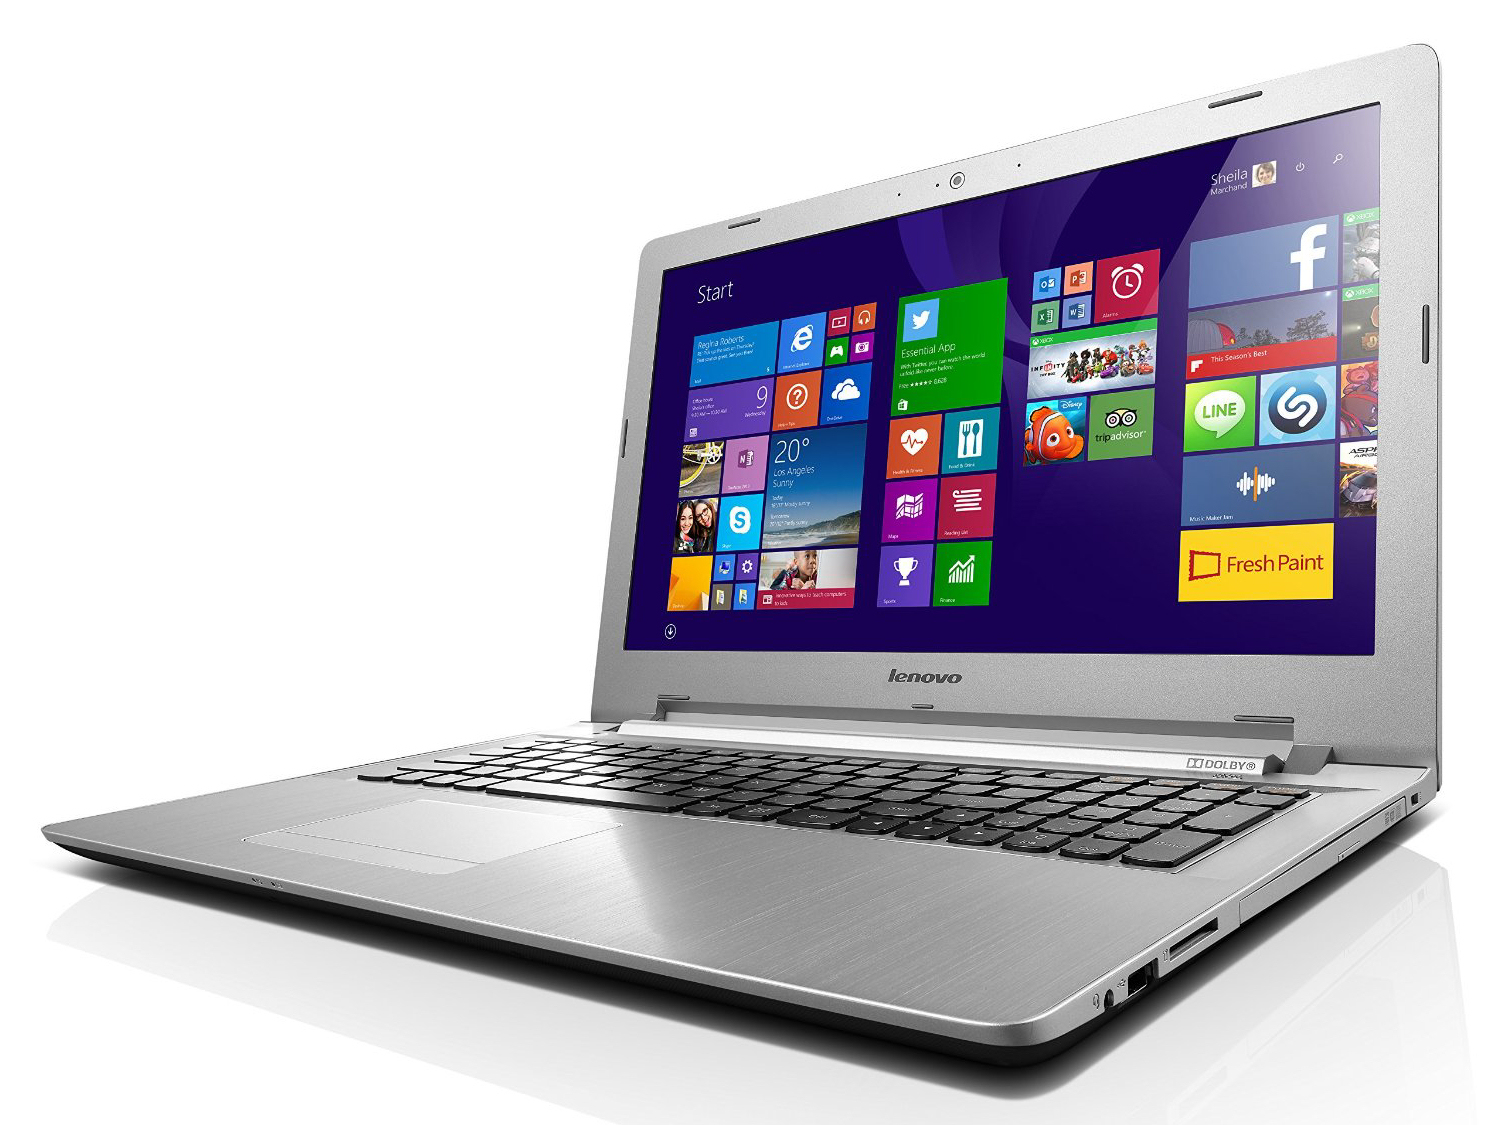 download lenovo g50-80 drivers for windows 8